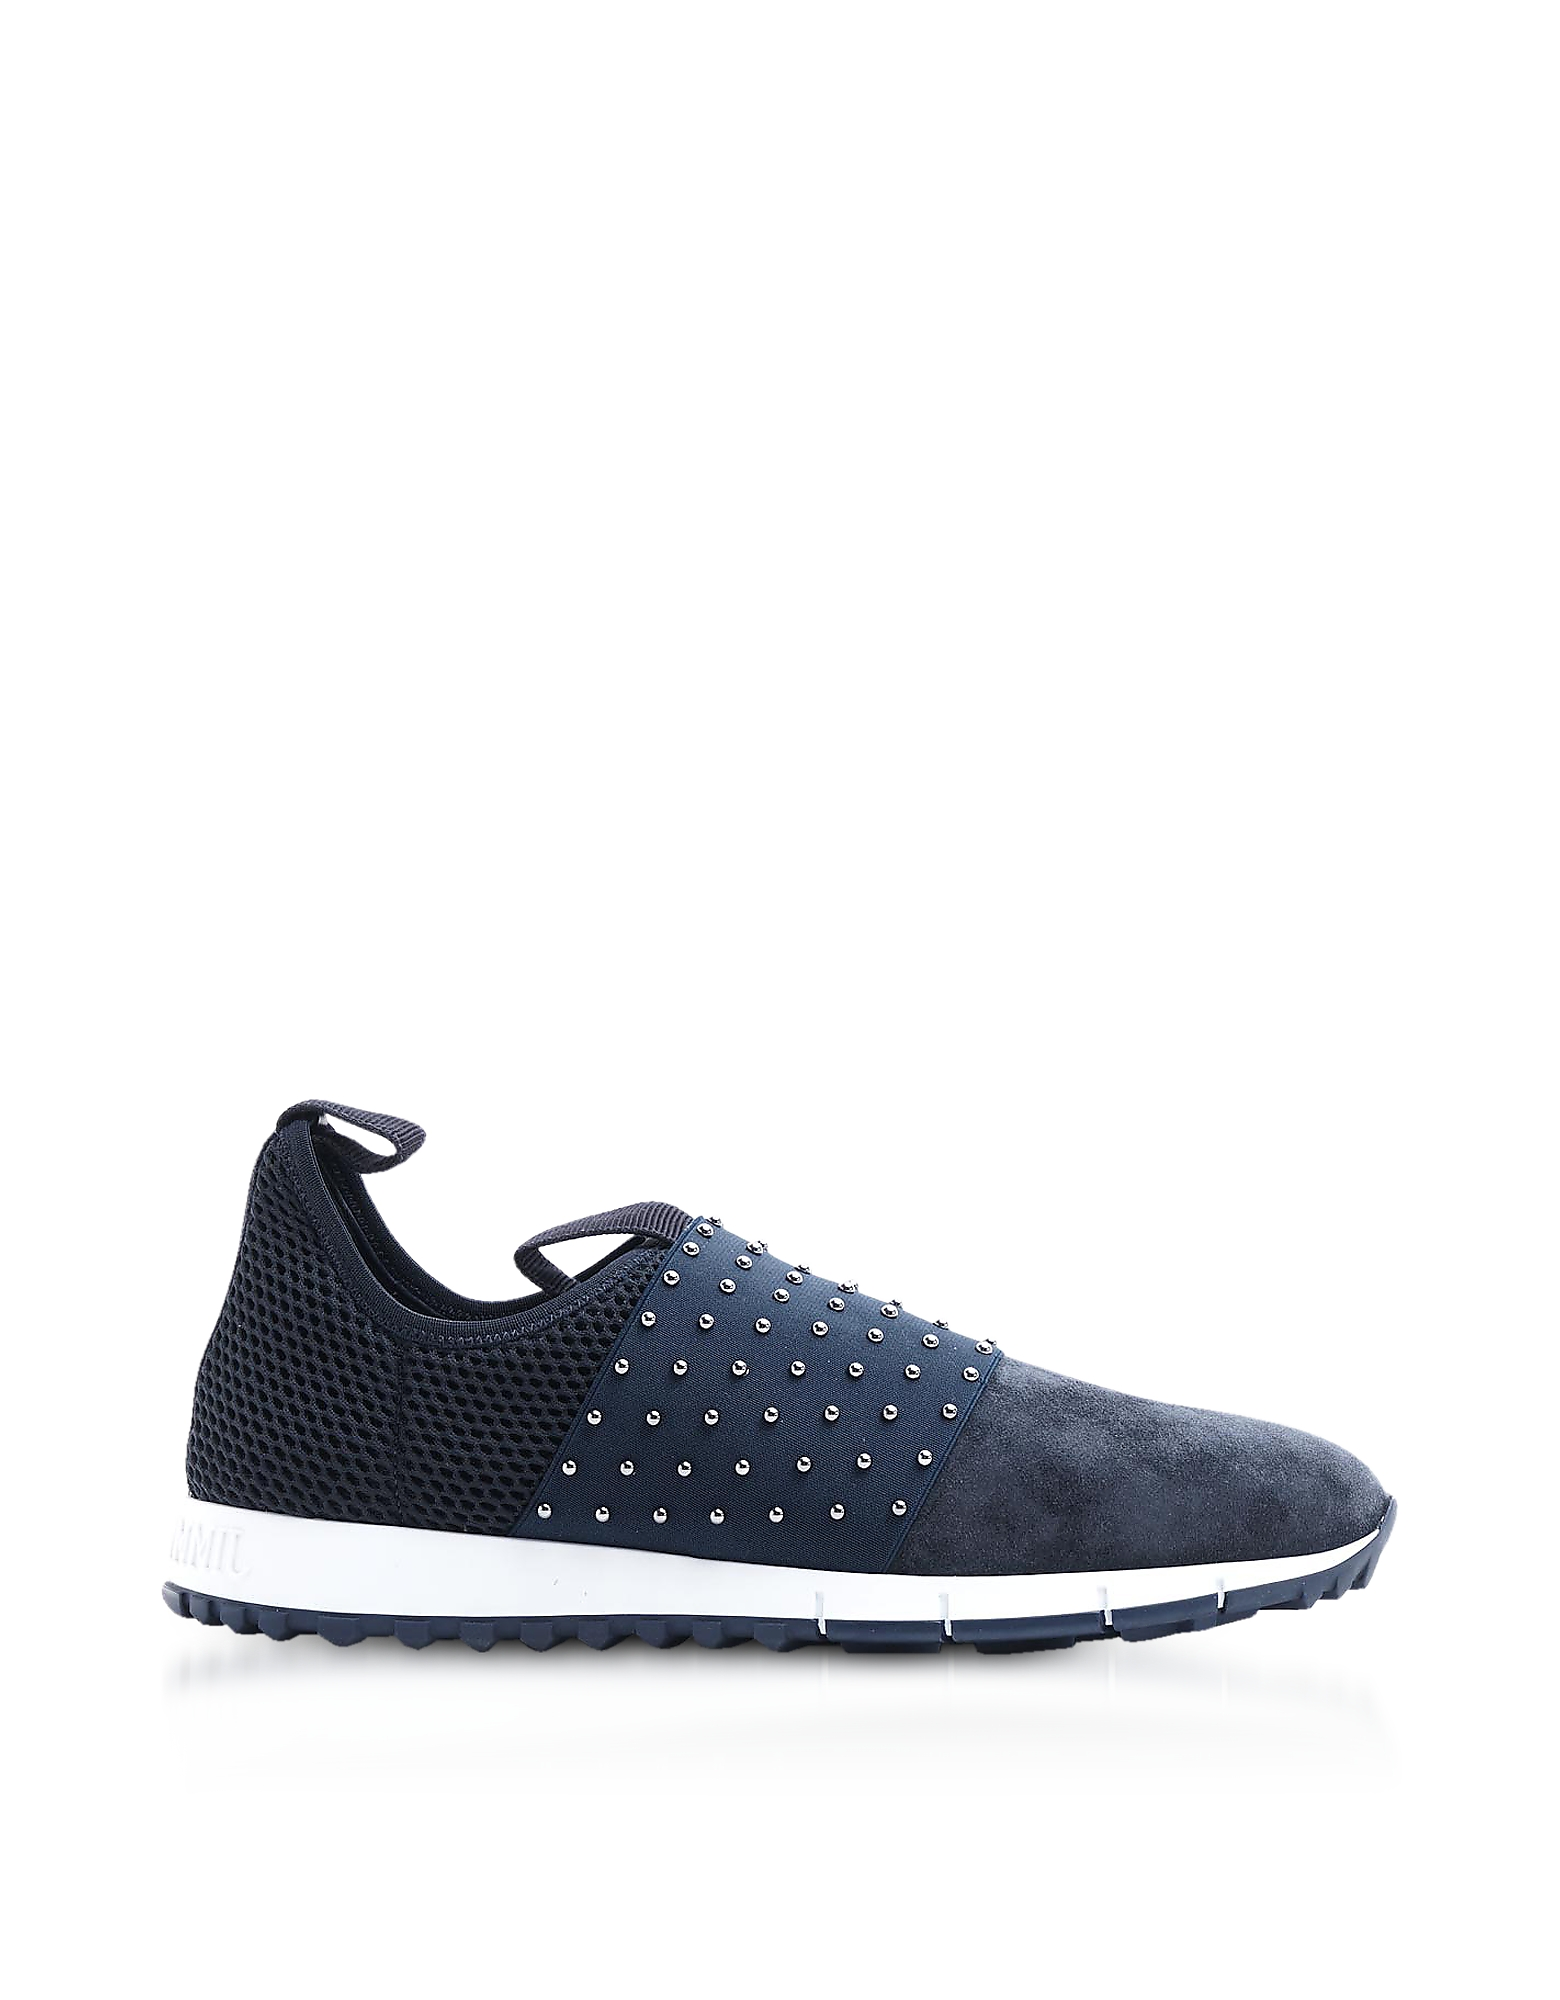 Jimmy Choo Shoes, Oakland/M Navy/Grey Velvet Suede and Pearl Elastic Slip On Trainers